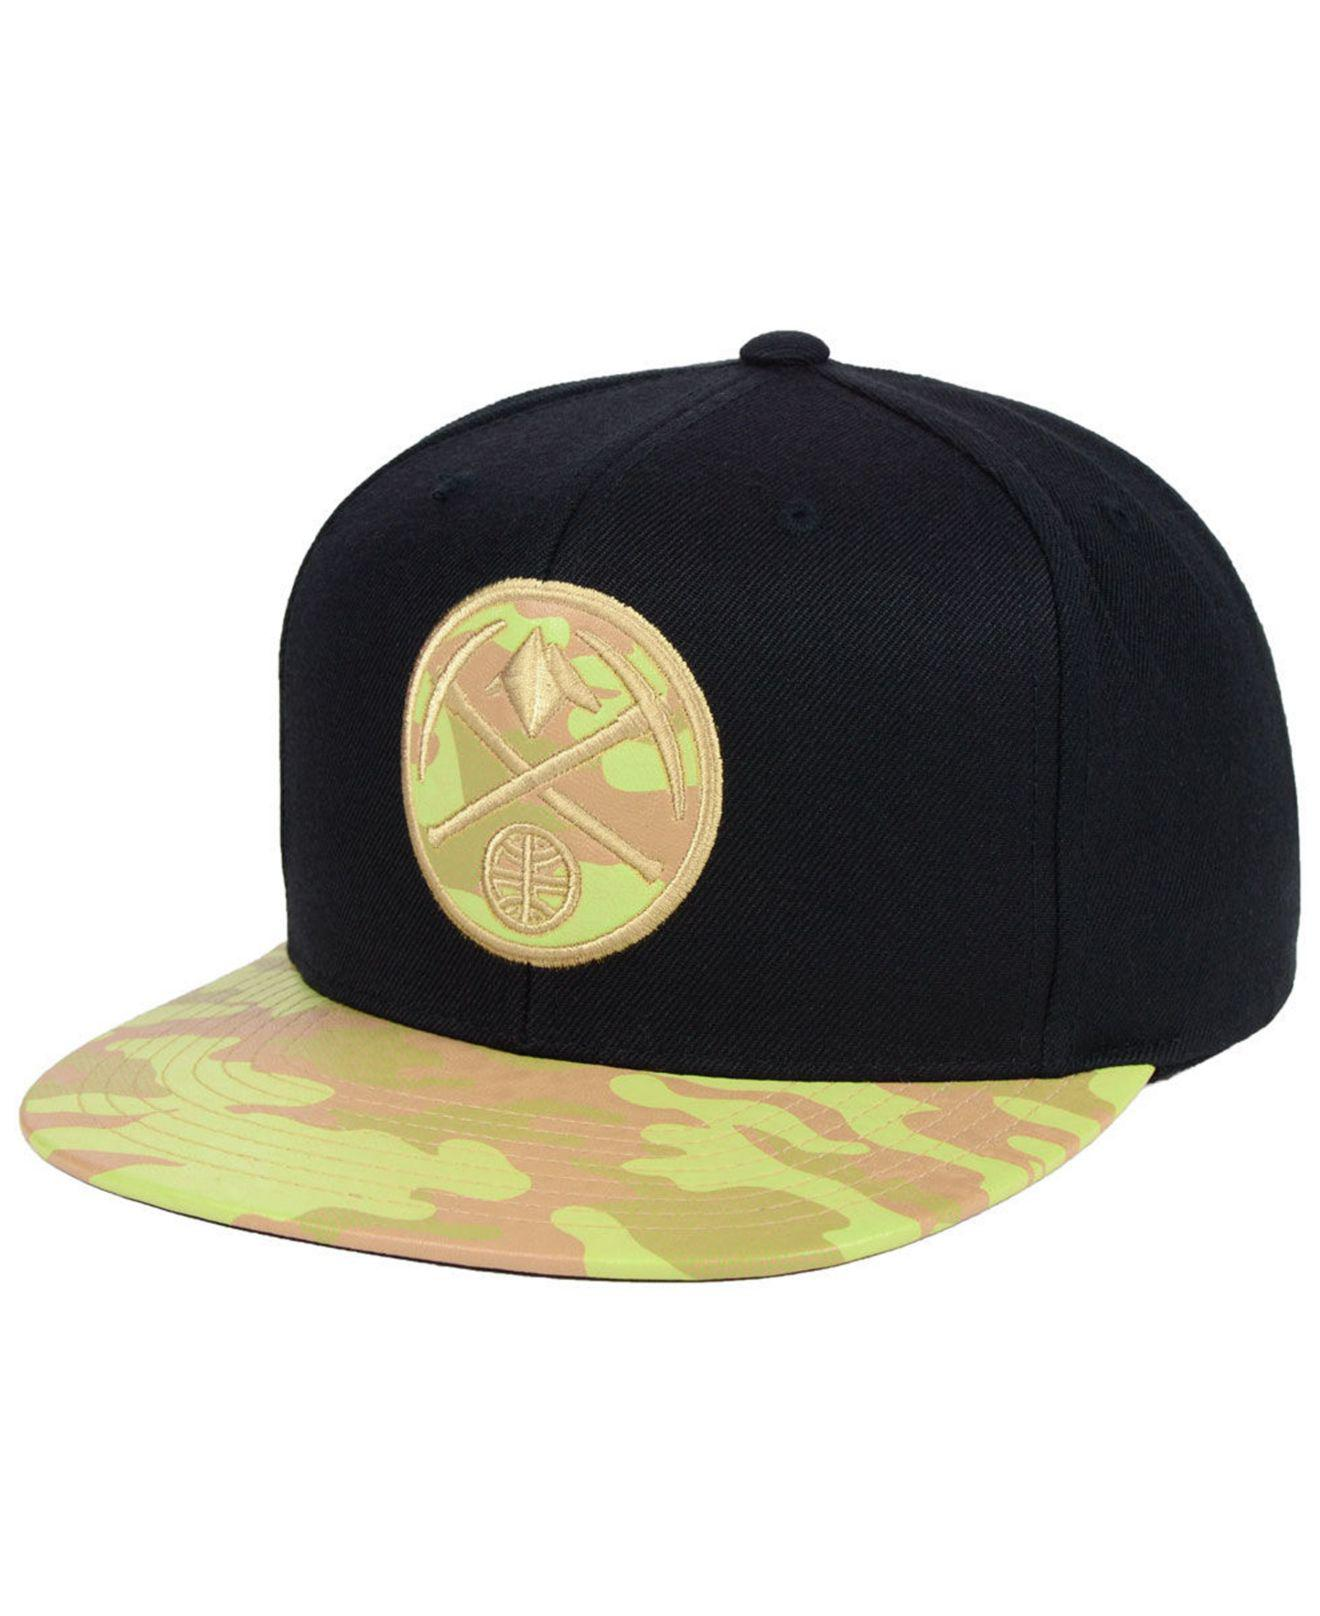 1ddc5eb7b45 Lyst - Mitchell   Ness Denver Nuggets Natural Camo Snapback Cap in ...